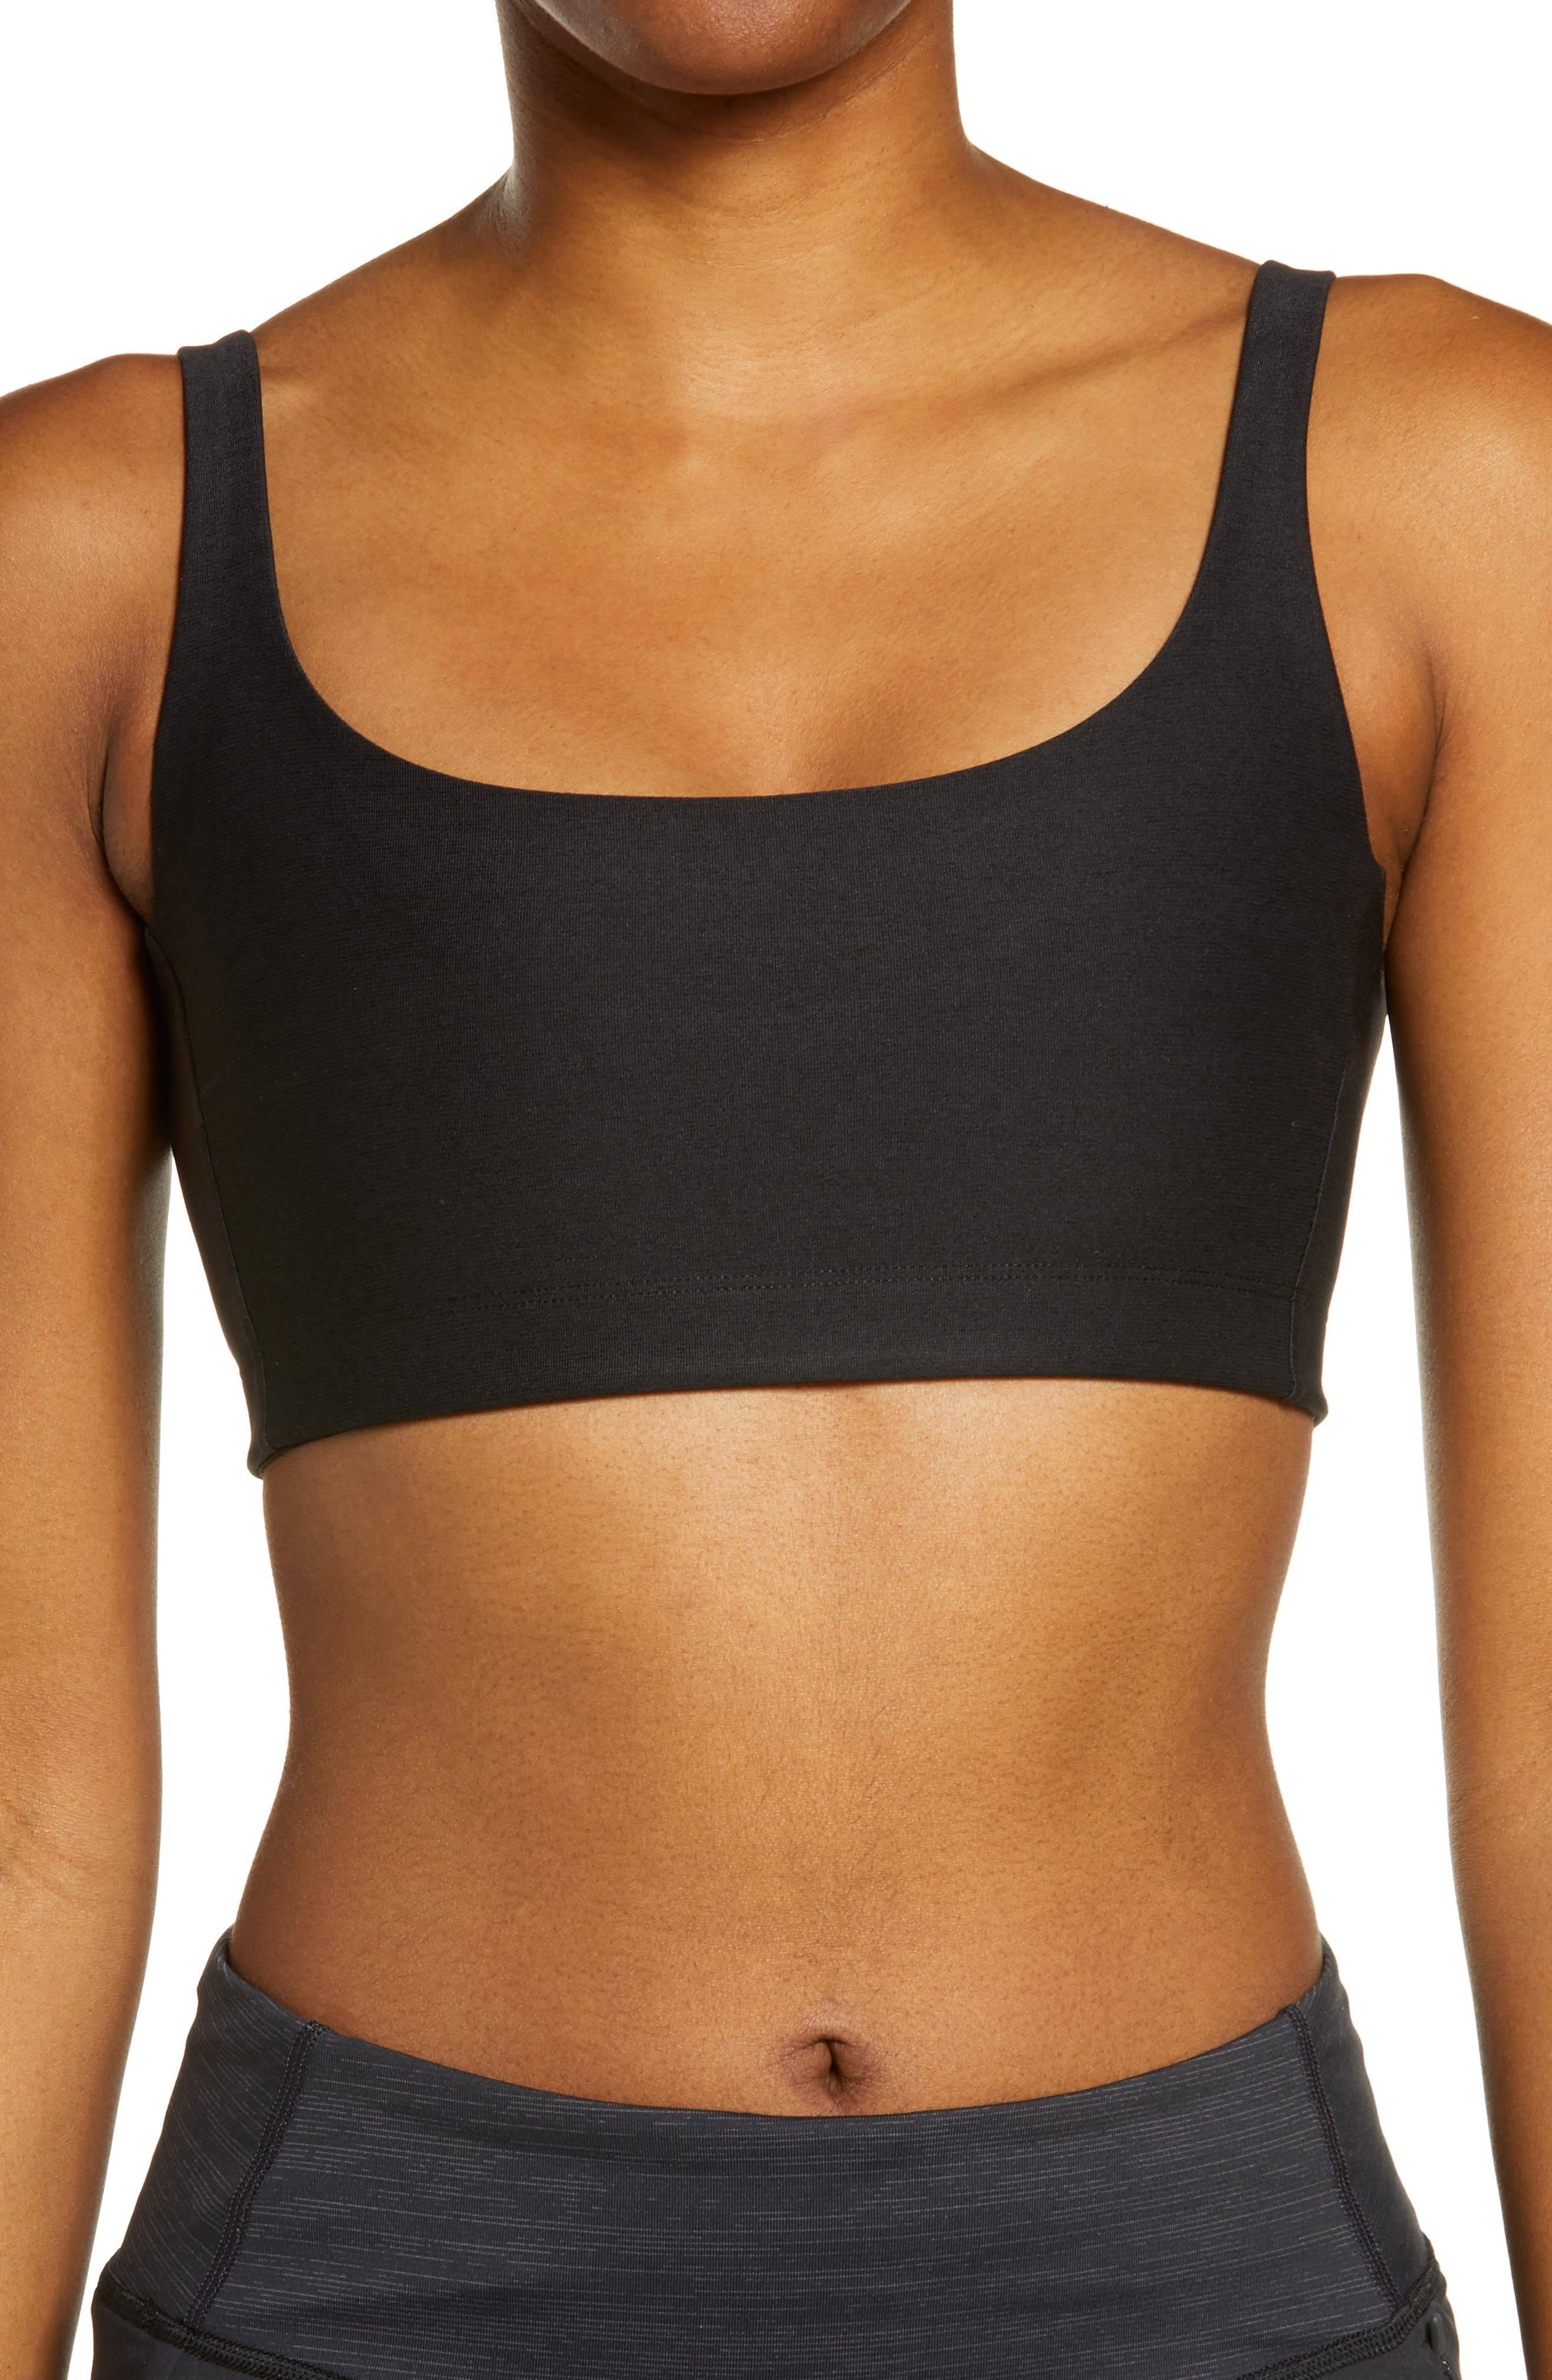 Outdoor Voices Women's Outdoor Voices Double Time Sports Bra, Size Small - Black